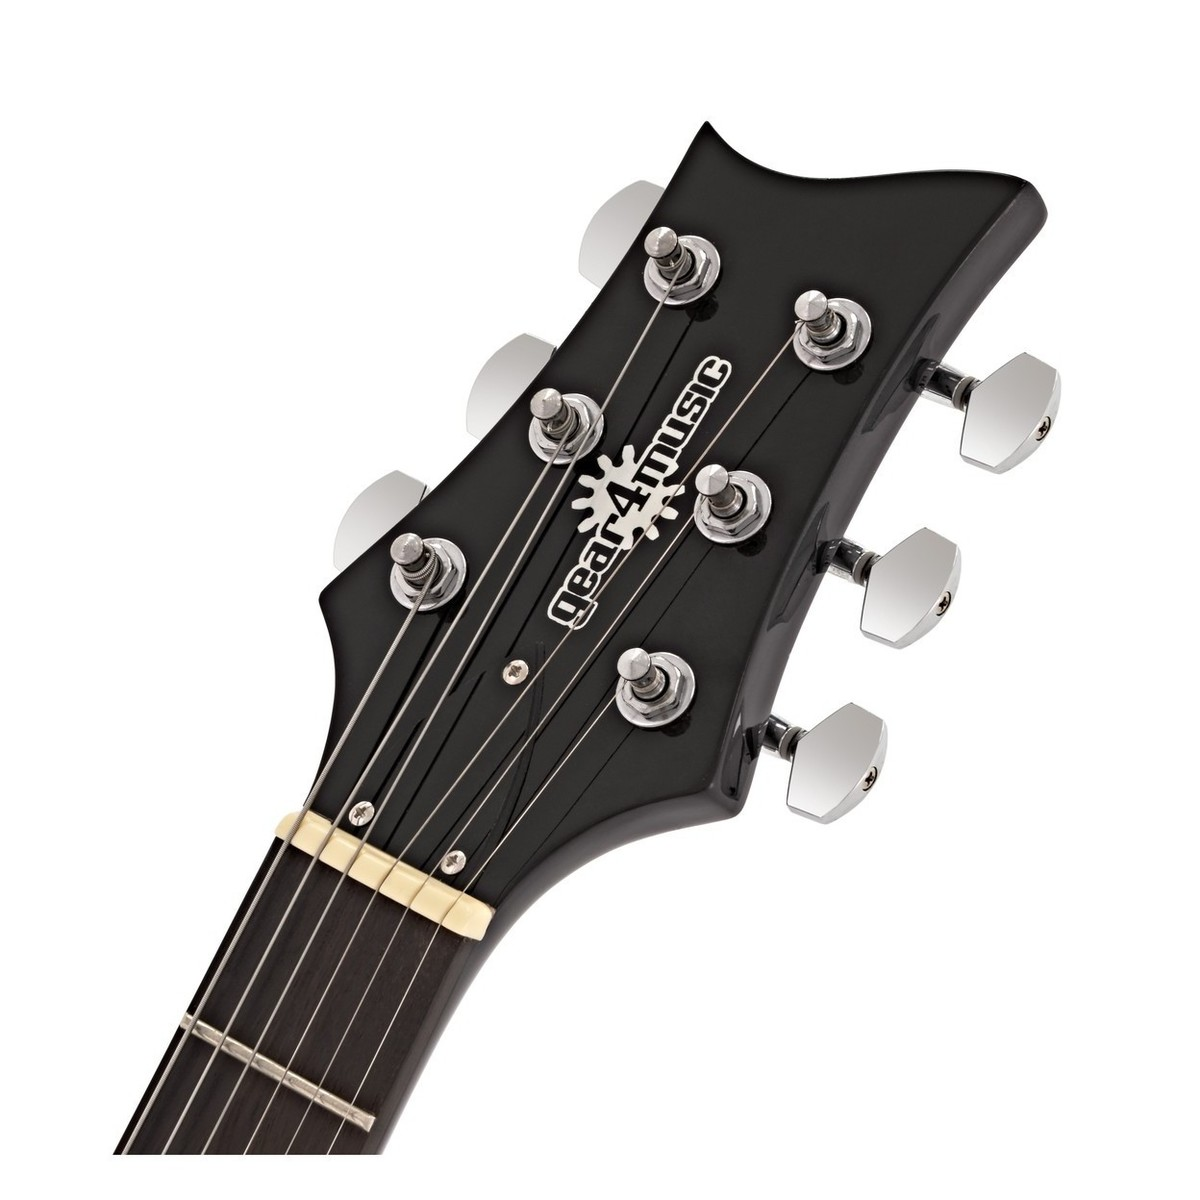 pasadena electric guitar by gear4music black inc free itrack pocket at gear4music. Black Bedroom Furniture Sets. Home Design Ideas